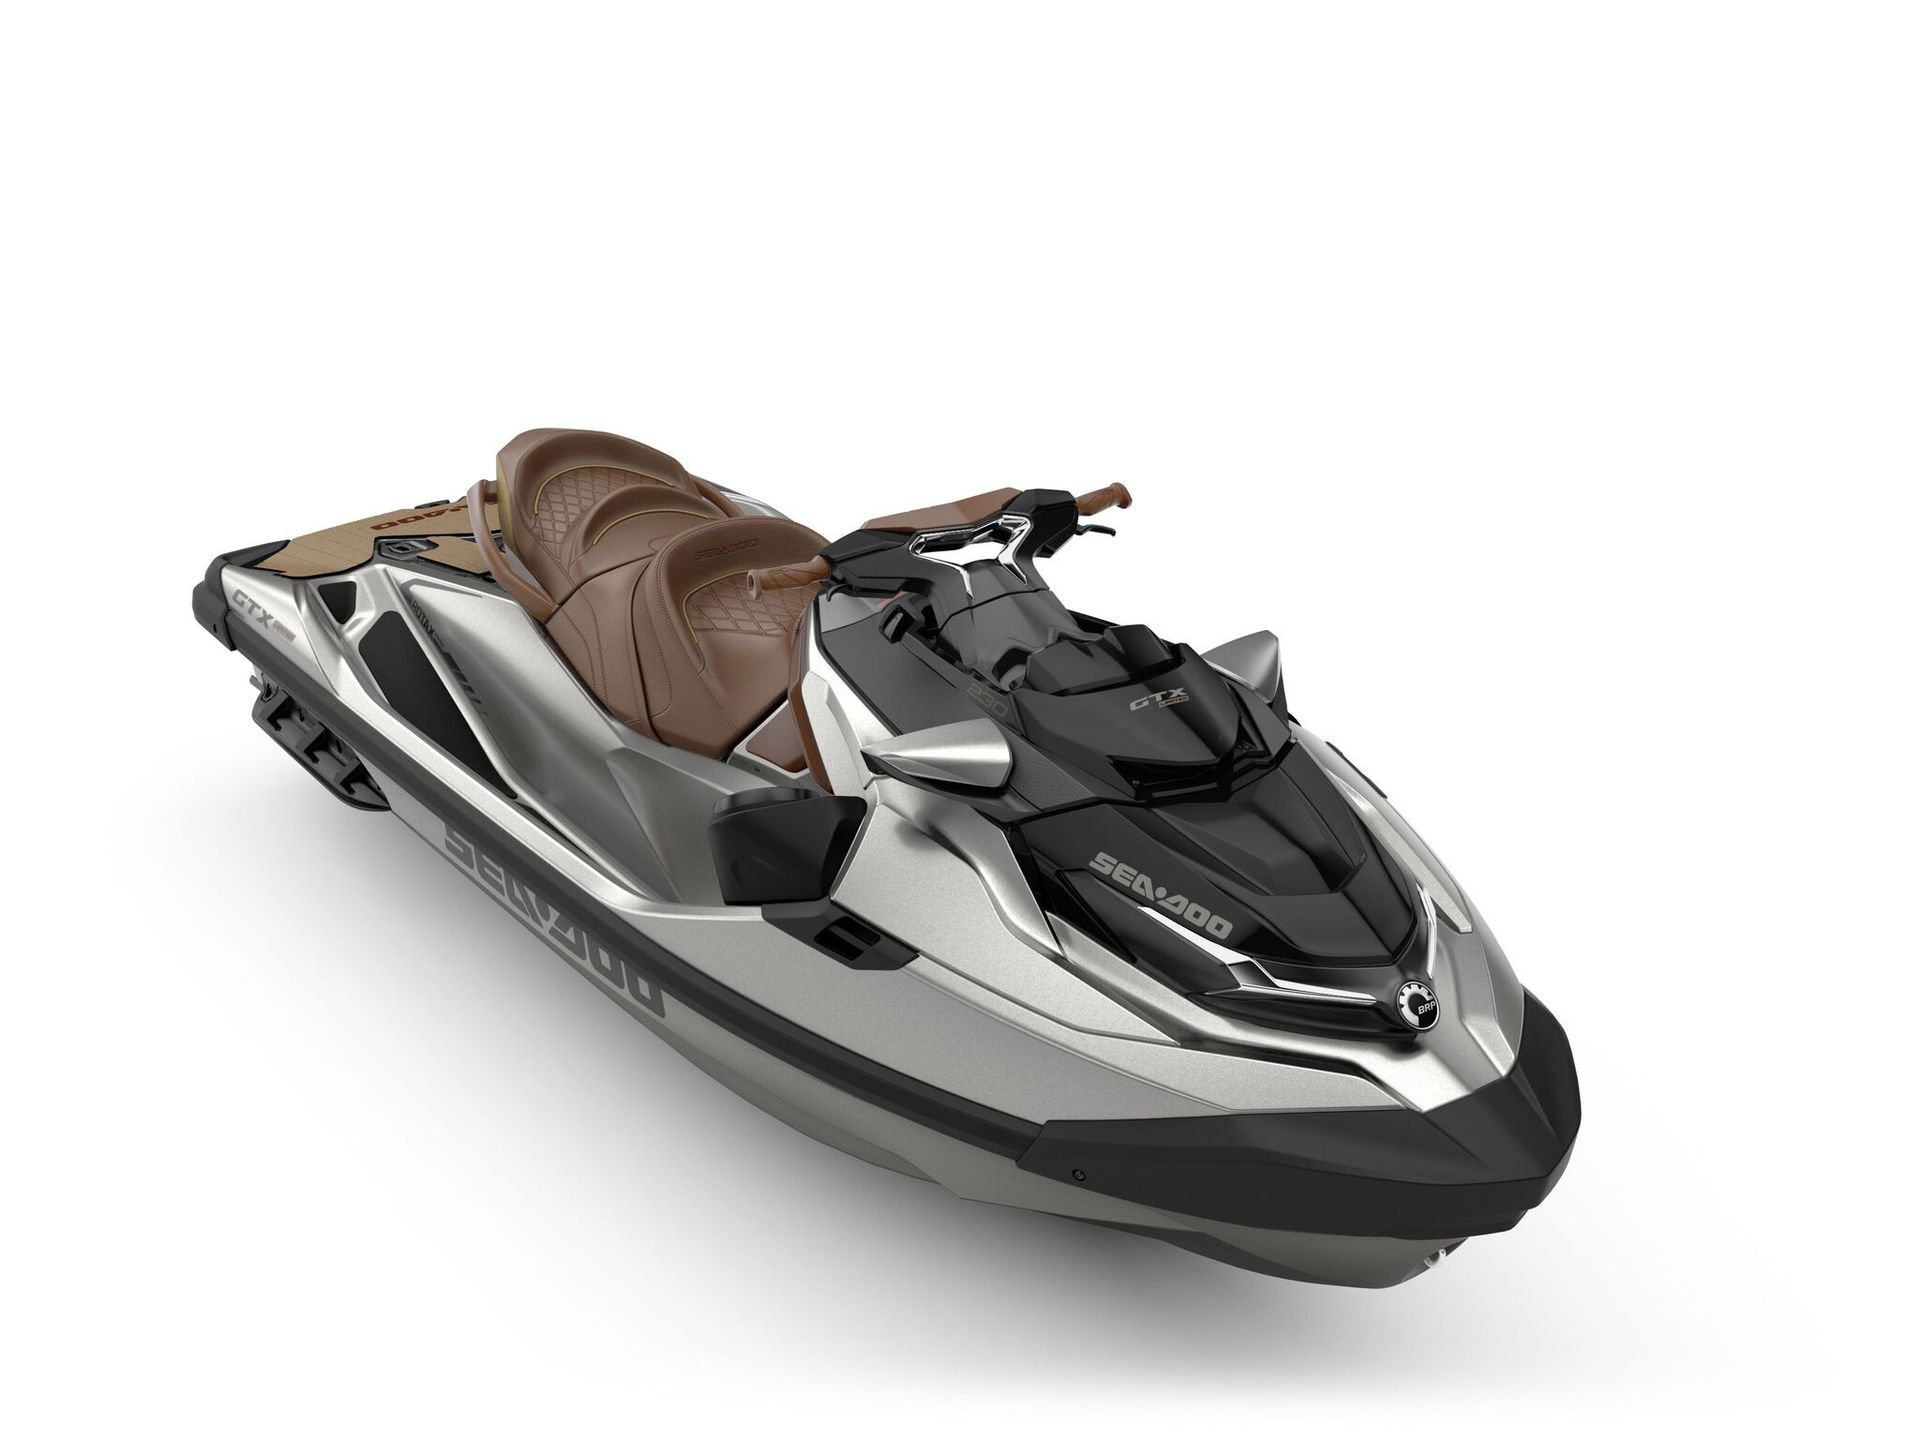 Sea-Doo Luxe GTX Limited 230